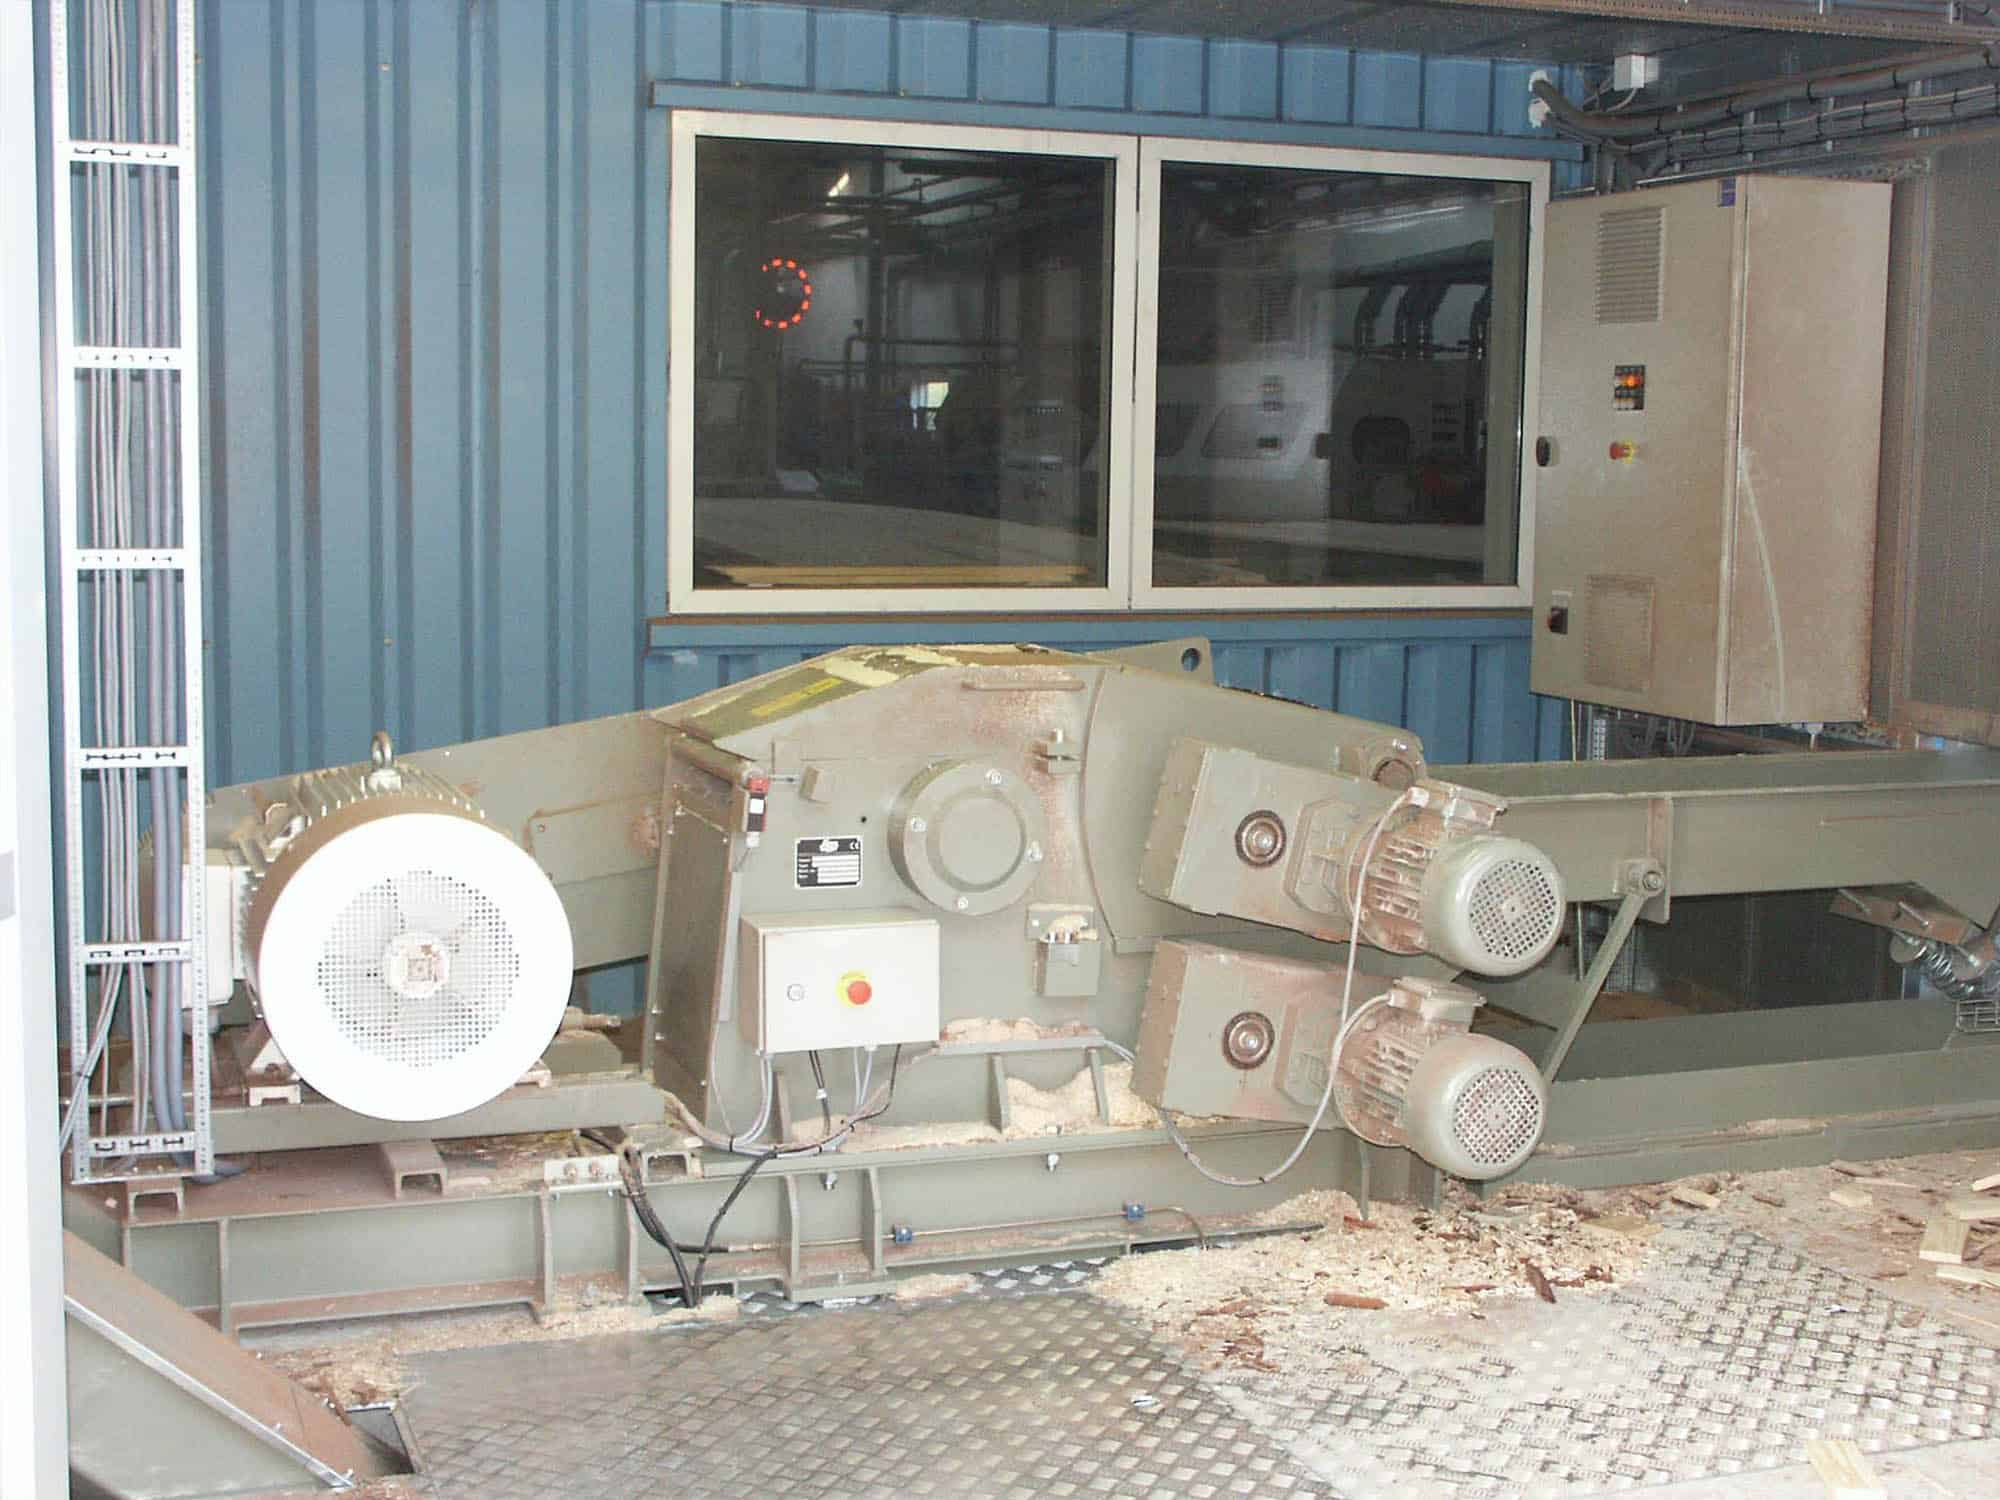 Scanhugger HT 45-45-2 wood chipepr at factory with vitration table